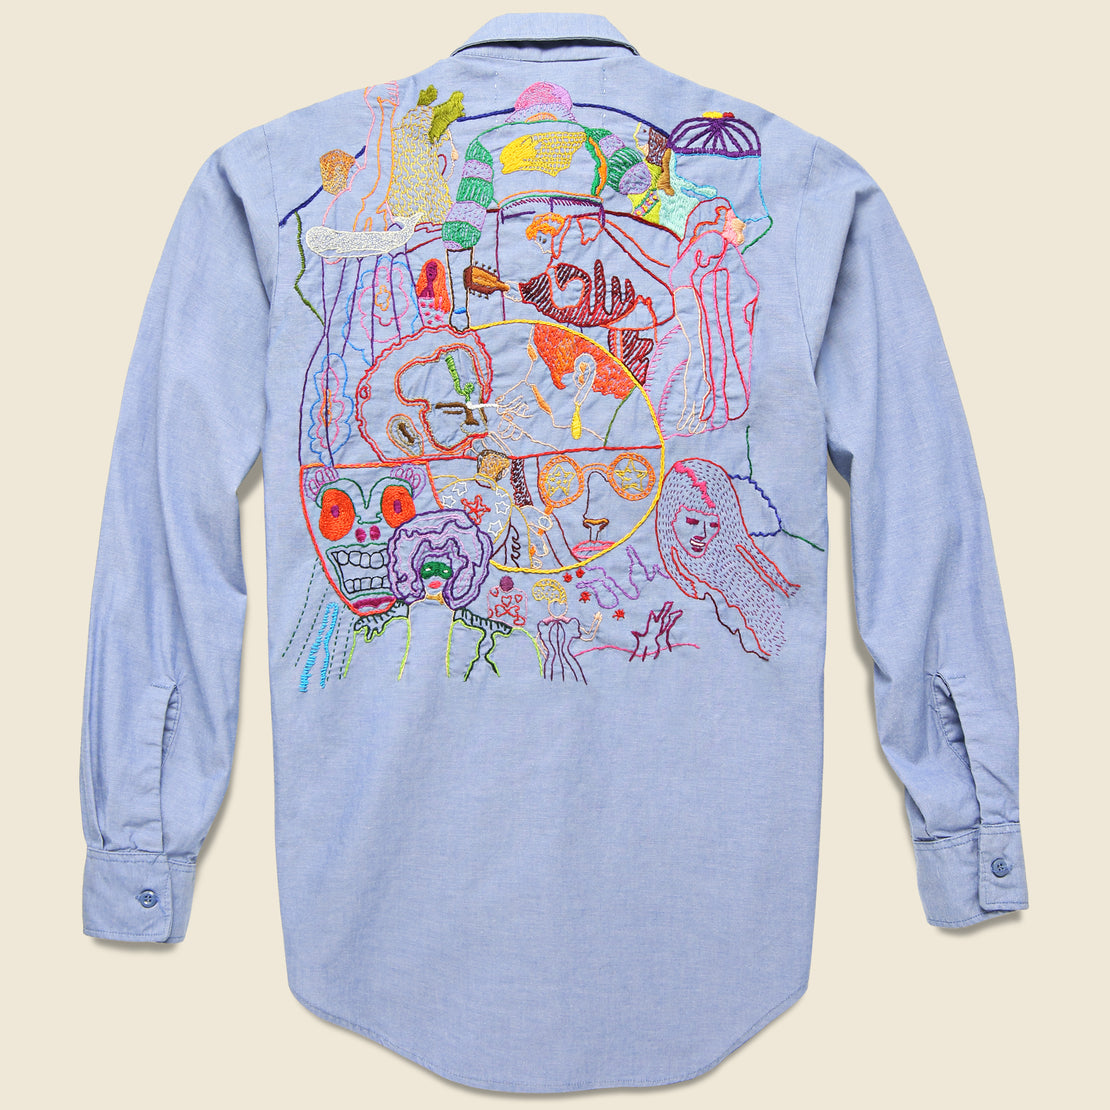 Jolly Knot Club Embroidered Chambray Shirt - Electric Kool-Aid Acid Test